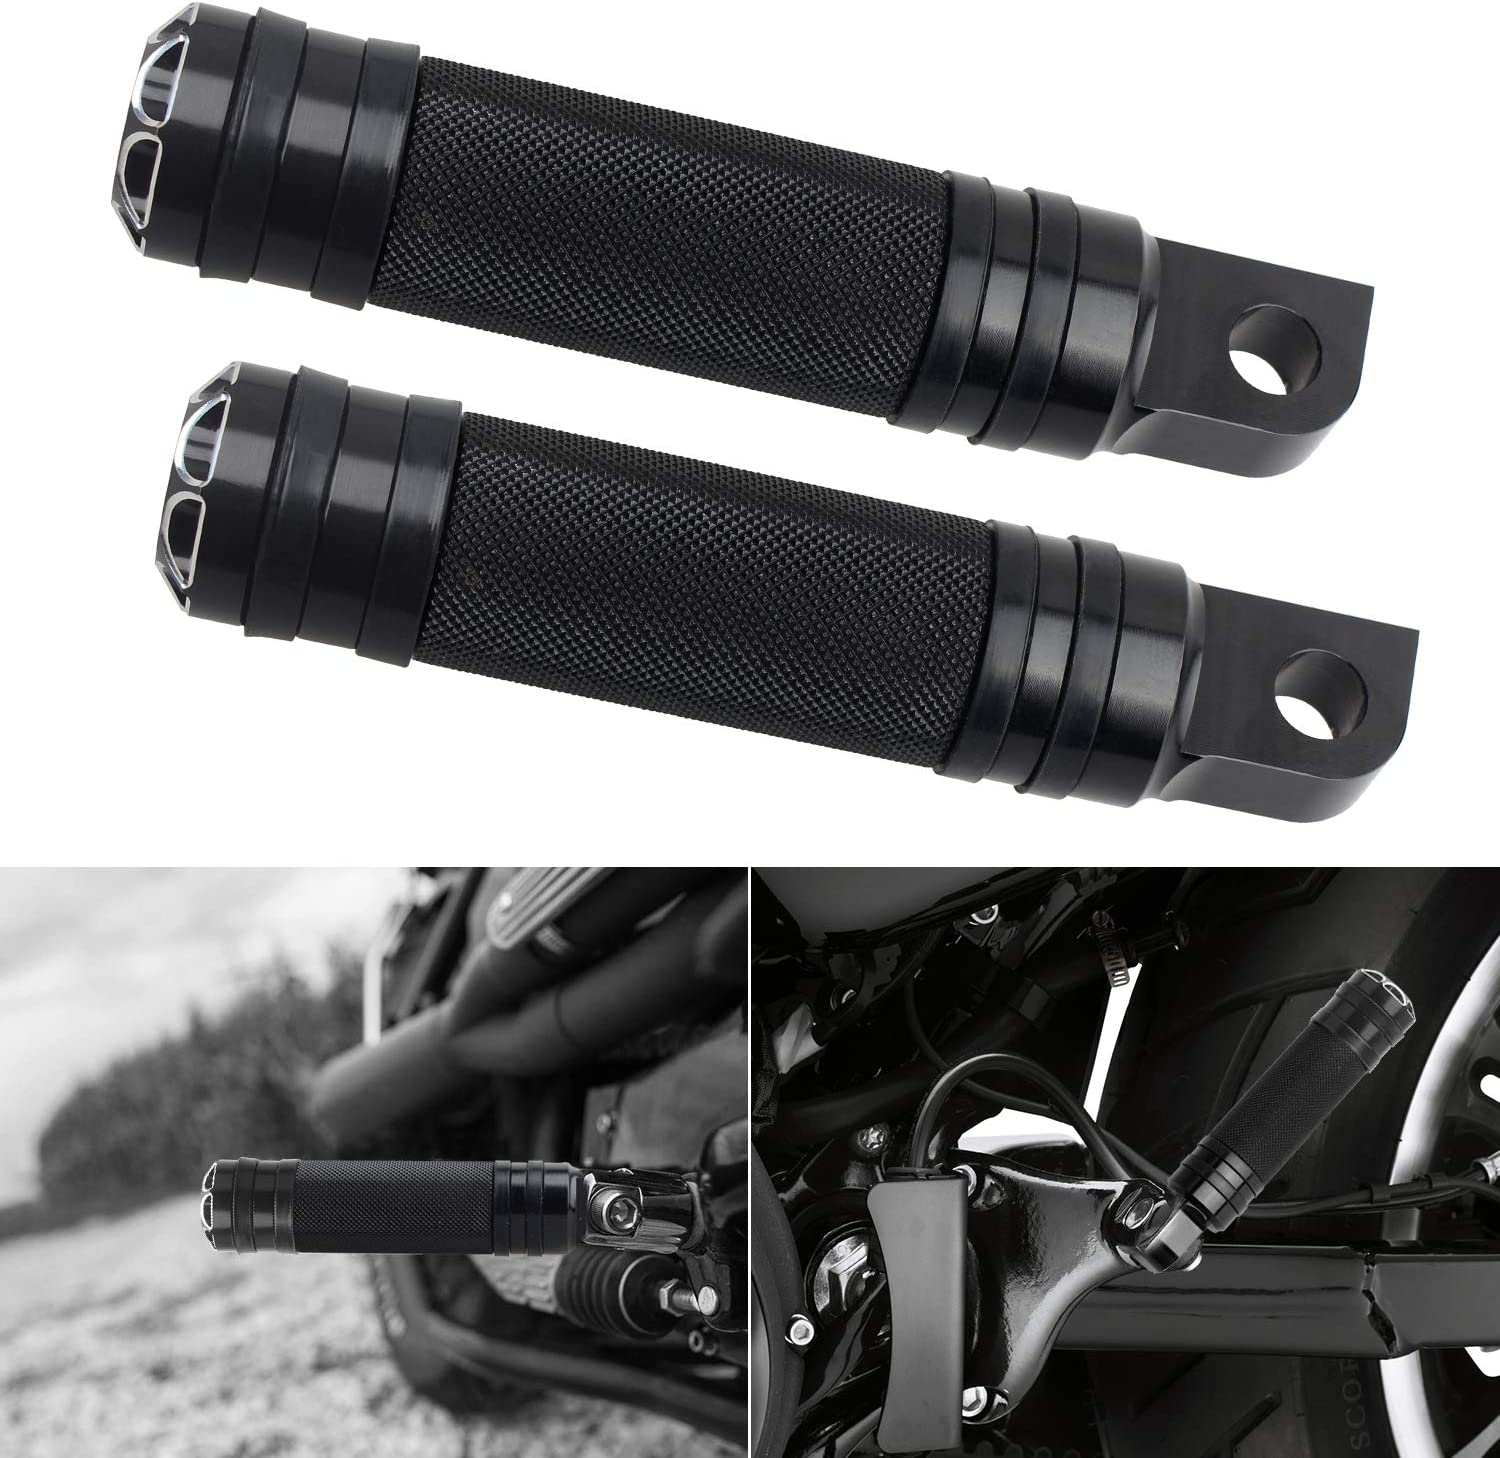 NTHREEAUTO Black Mounting Footpegs Male Billet Footrests Motorcycle Passenger Pedals Compatible with Harley Sportster Road King Dyna